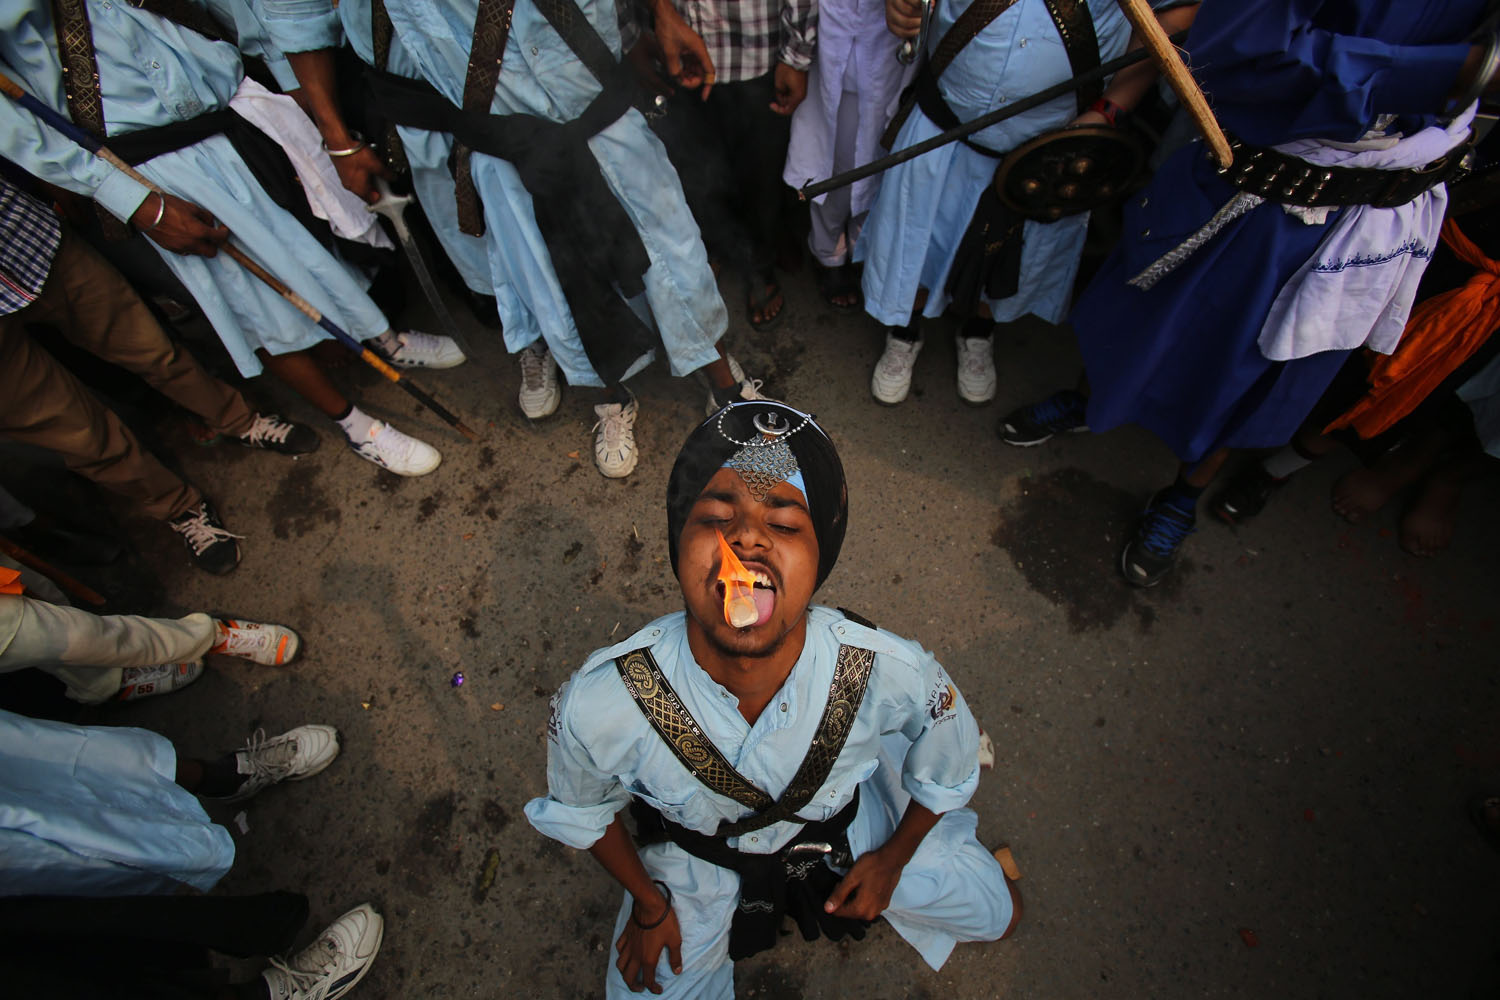 Oct. 8, 2013. A Sikh man puts a burning camphor on his tongue as he performs 'Gatka', an ancient form of Sikh martial arts during a religious procession in Amritsar, India.